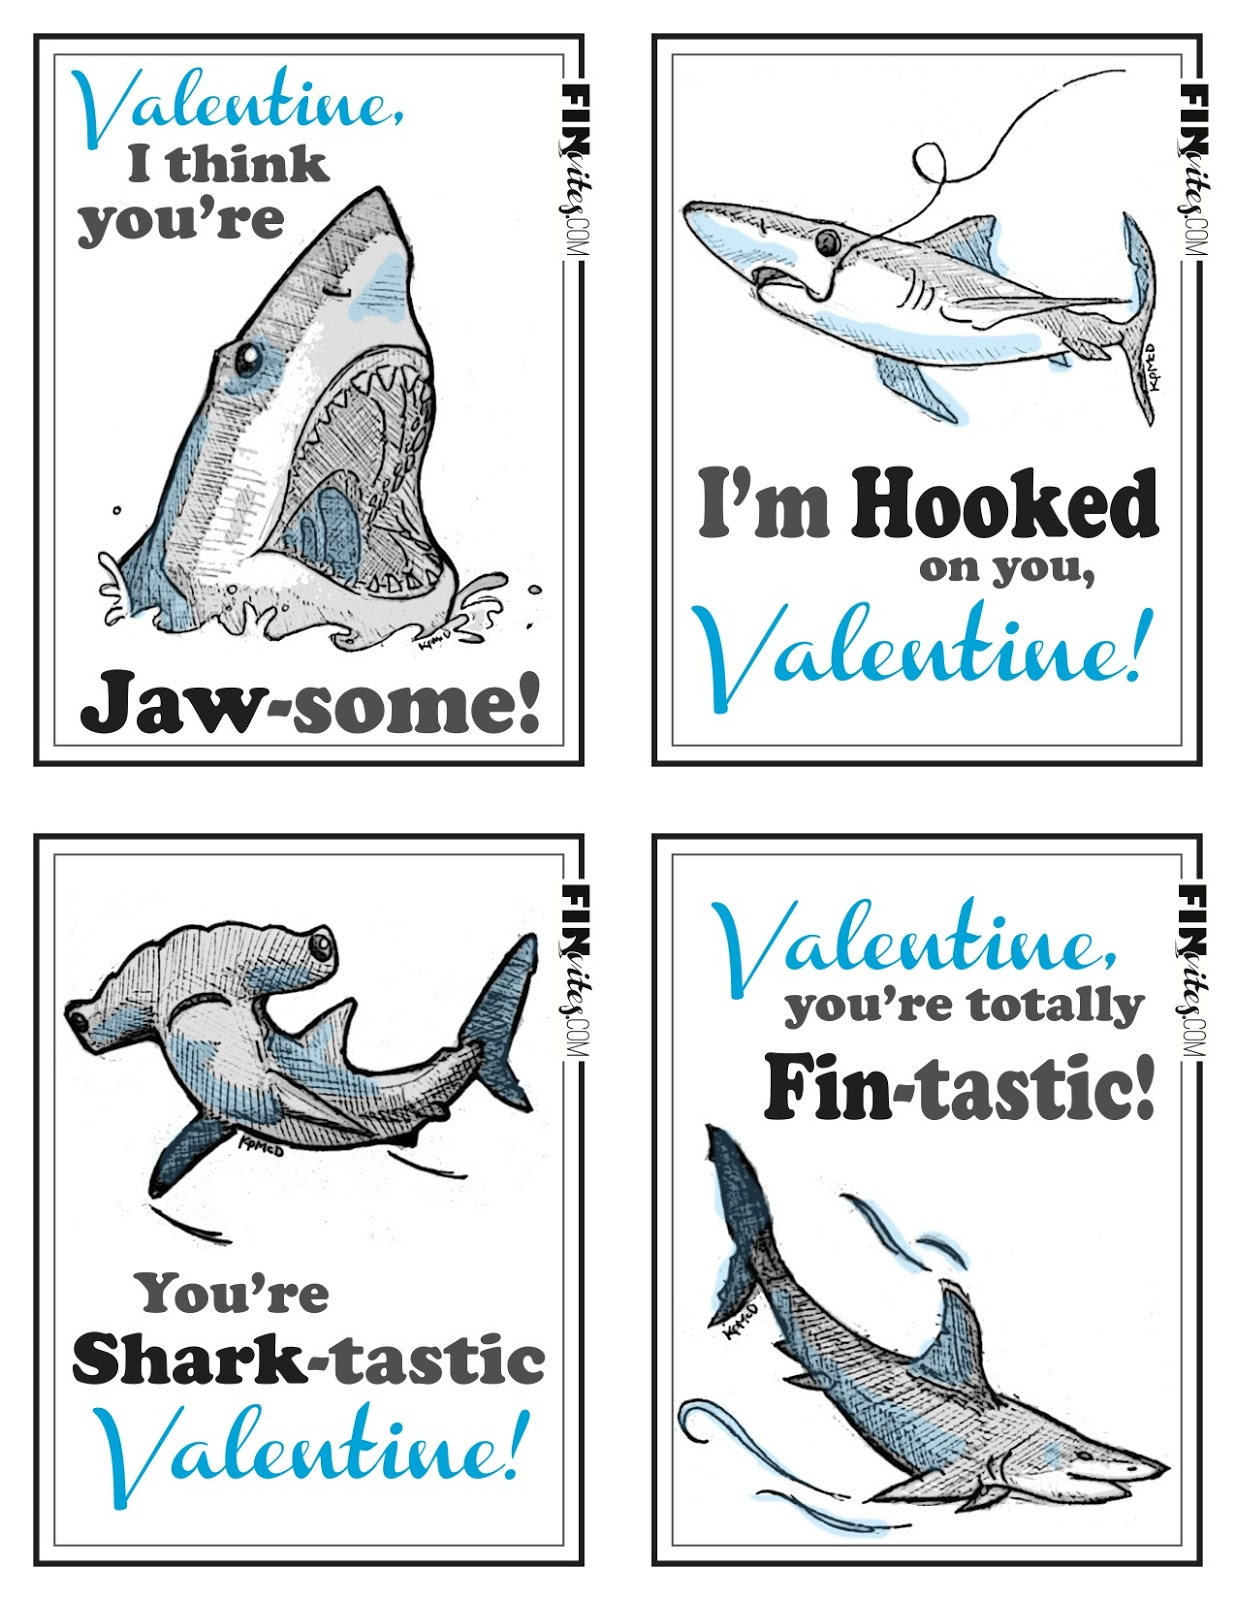 Kpquepasa Some Assembly Required Free Fin Tabulous Valentine Printables